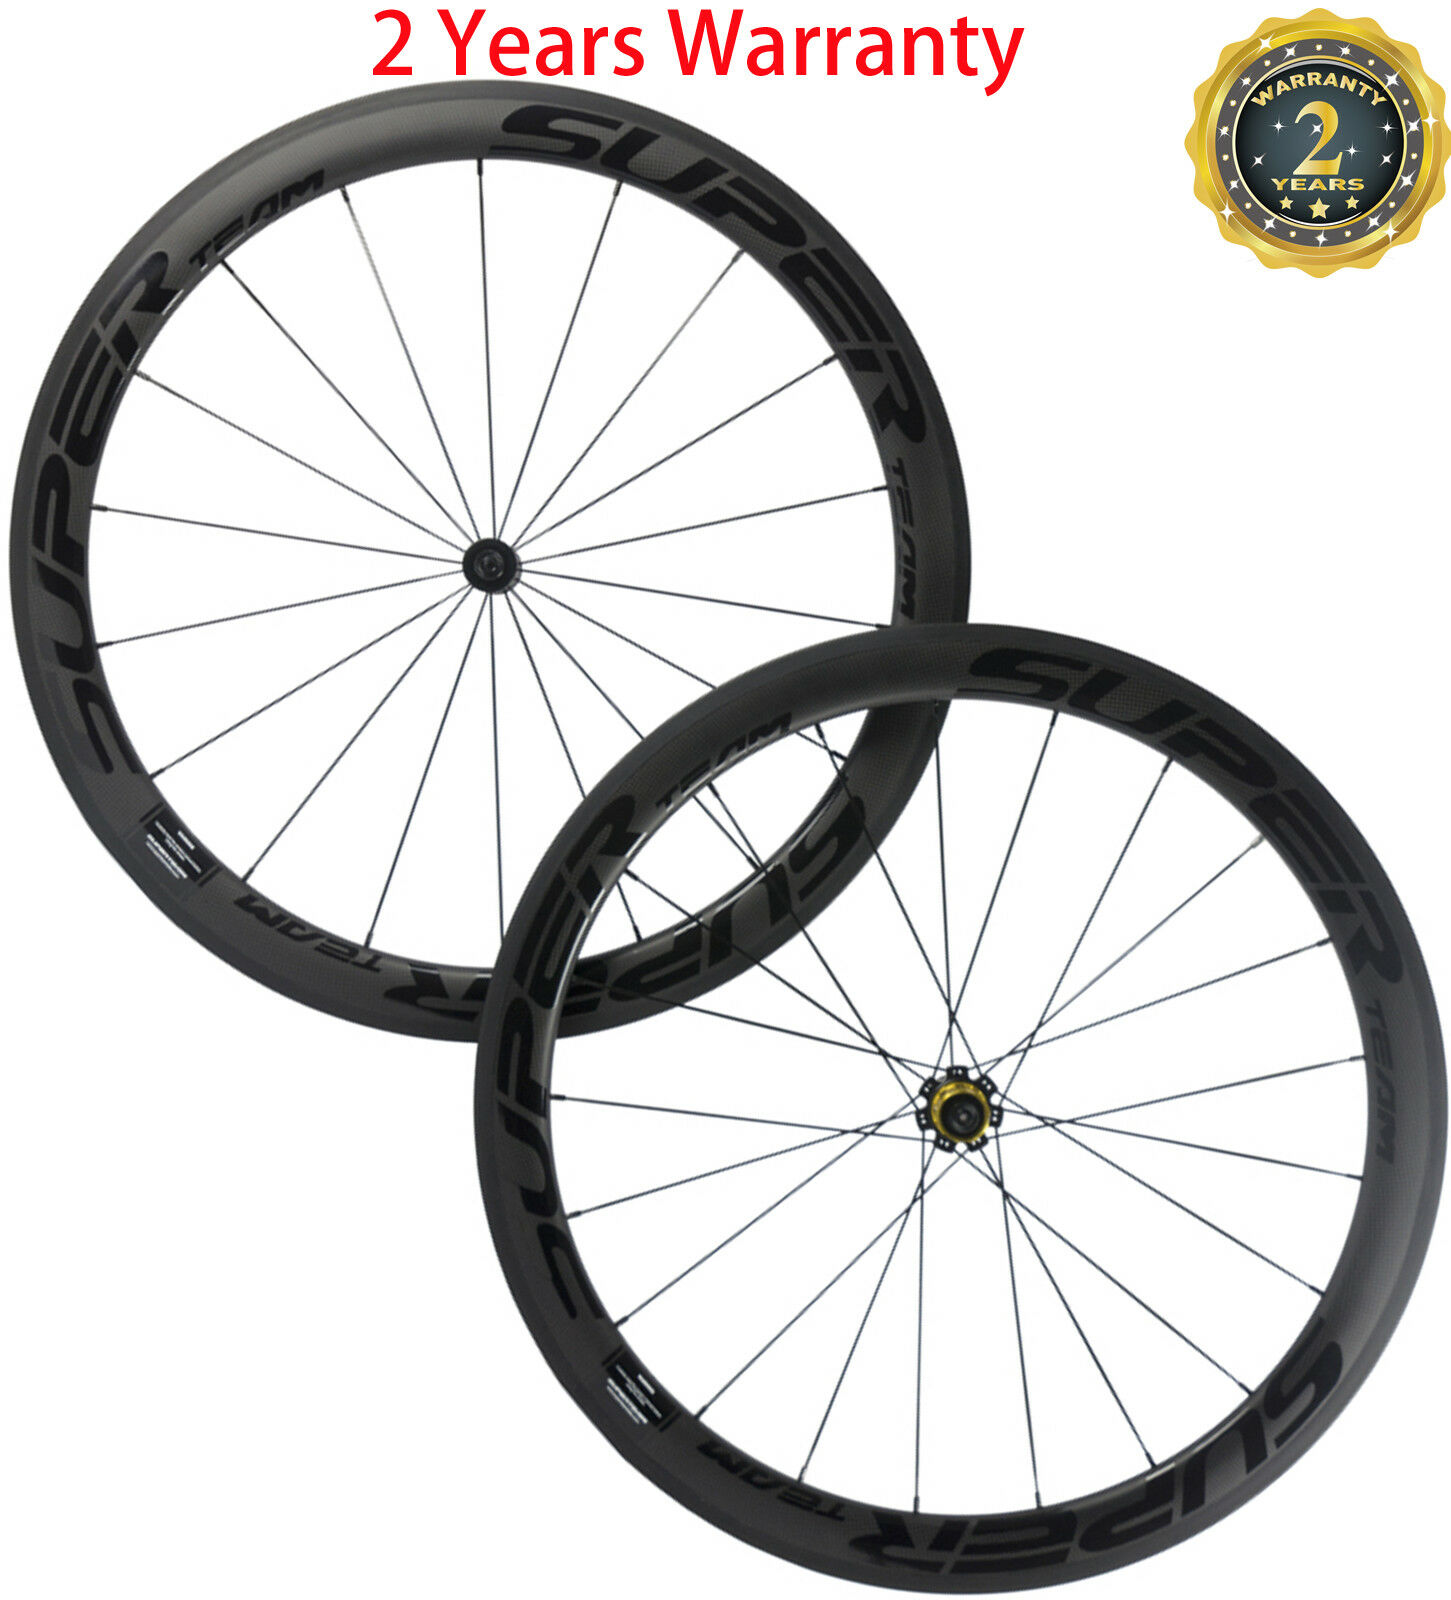 25mm U Shape Clincher Carbon Wheel Wheelset 50mm Ceramic Bearing R7 Hub 700C